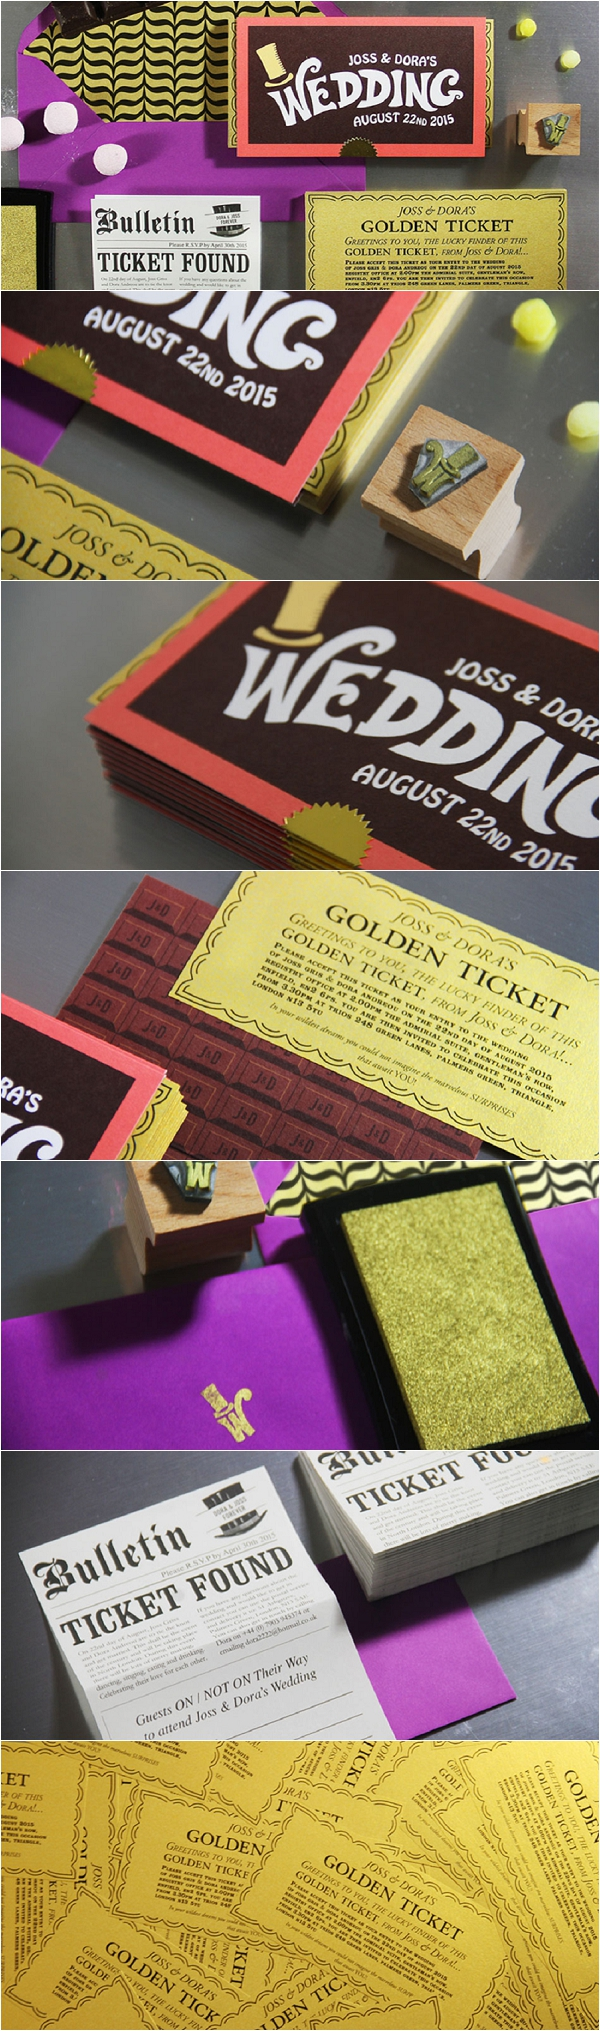 Wonka Wedding Stationery by Creative Wedding Stationery company Belleink